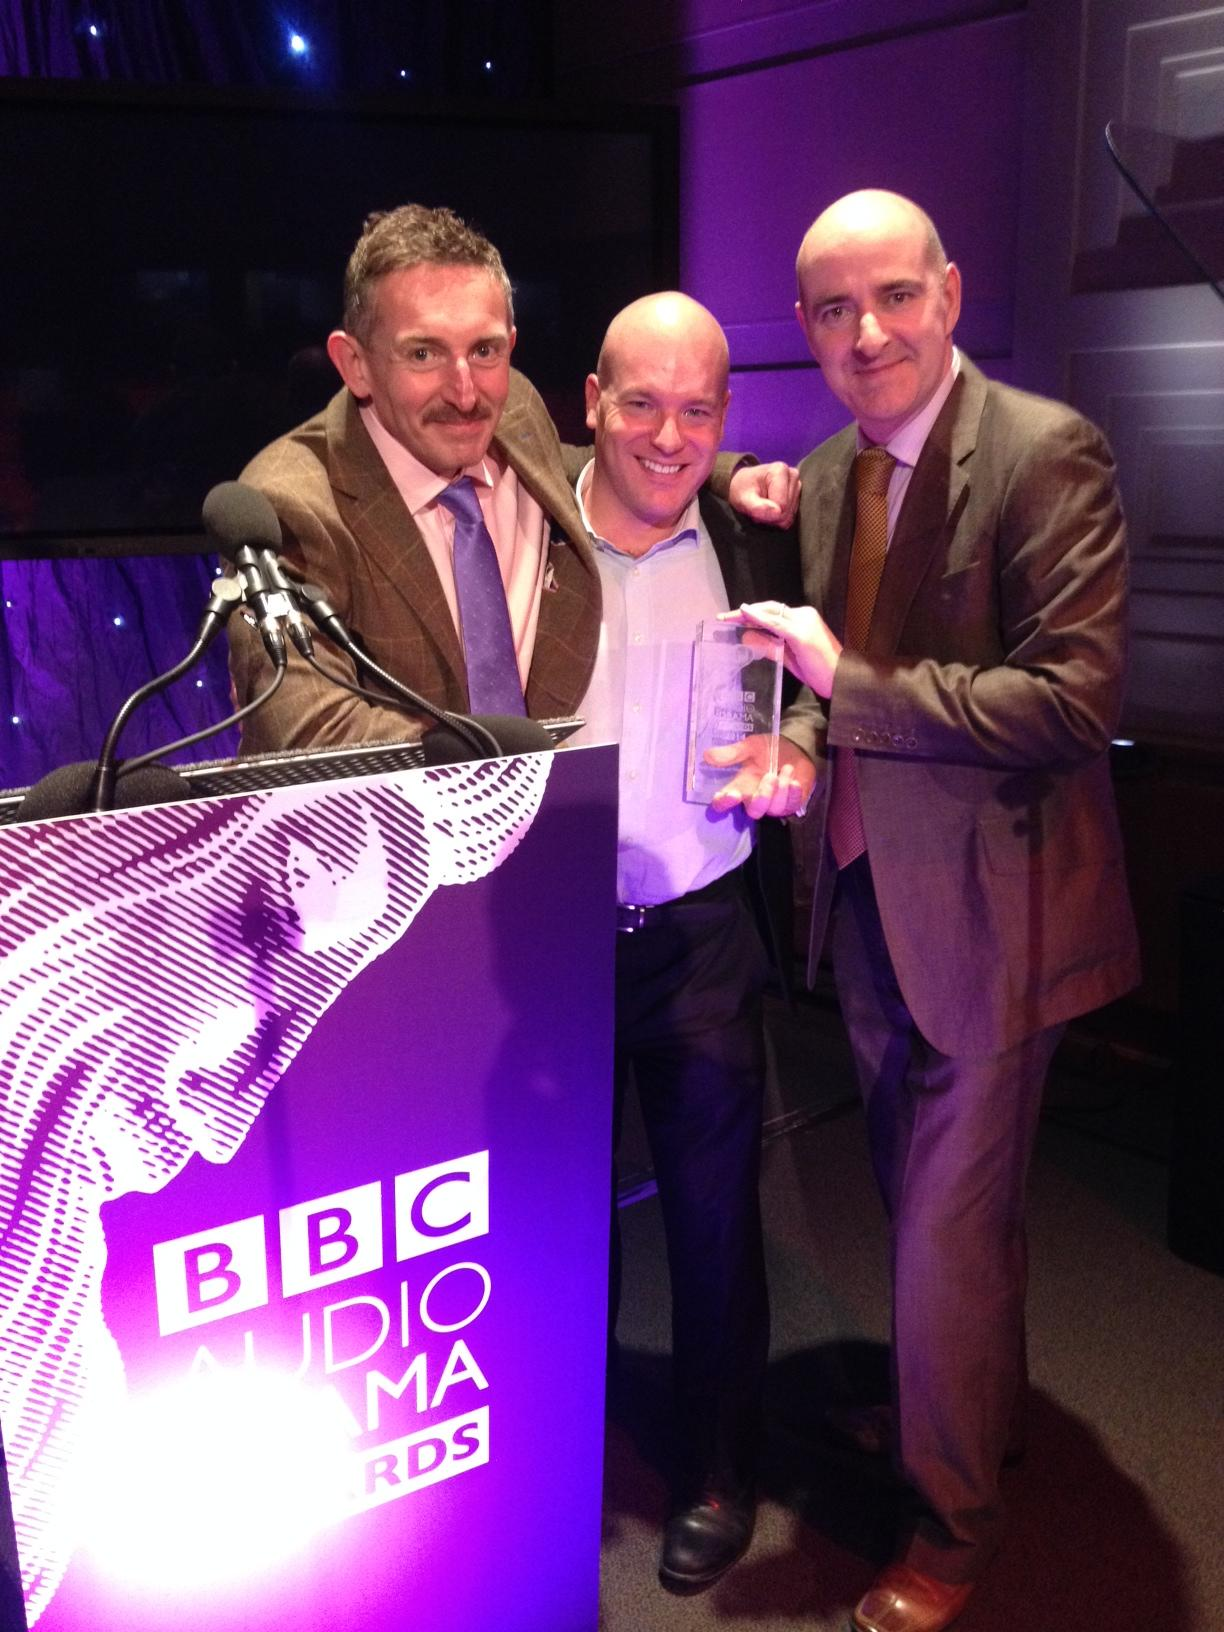 Big Finish at the BBC Audio Drama Awards 2014 (Credit: Big Finish)